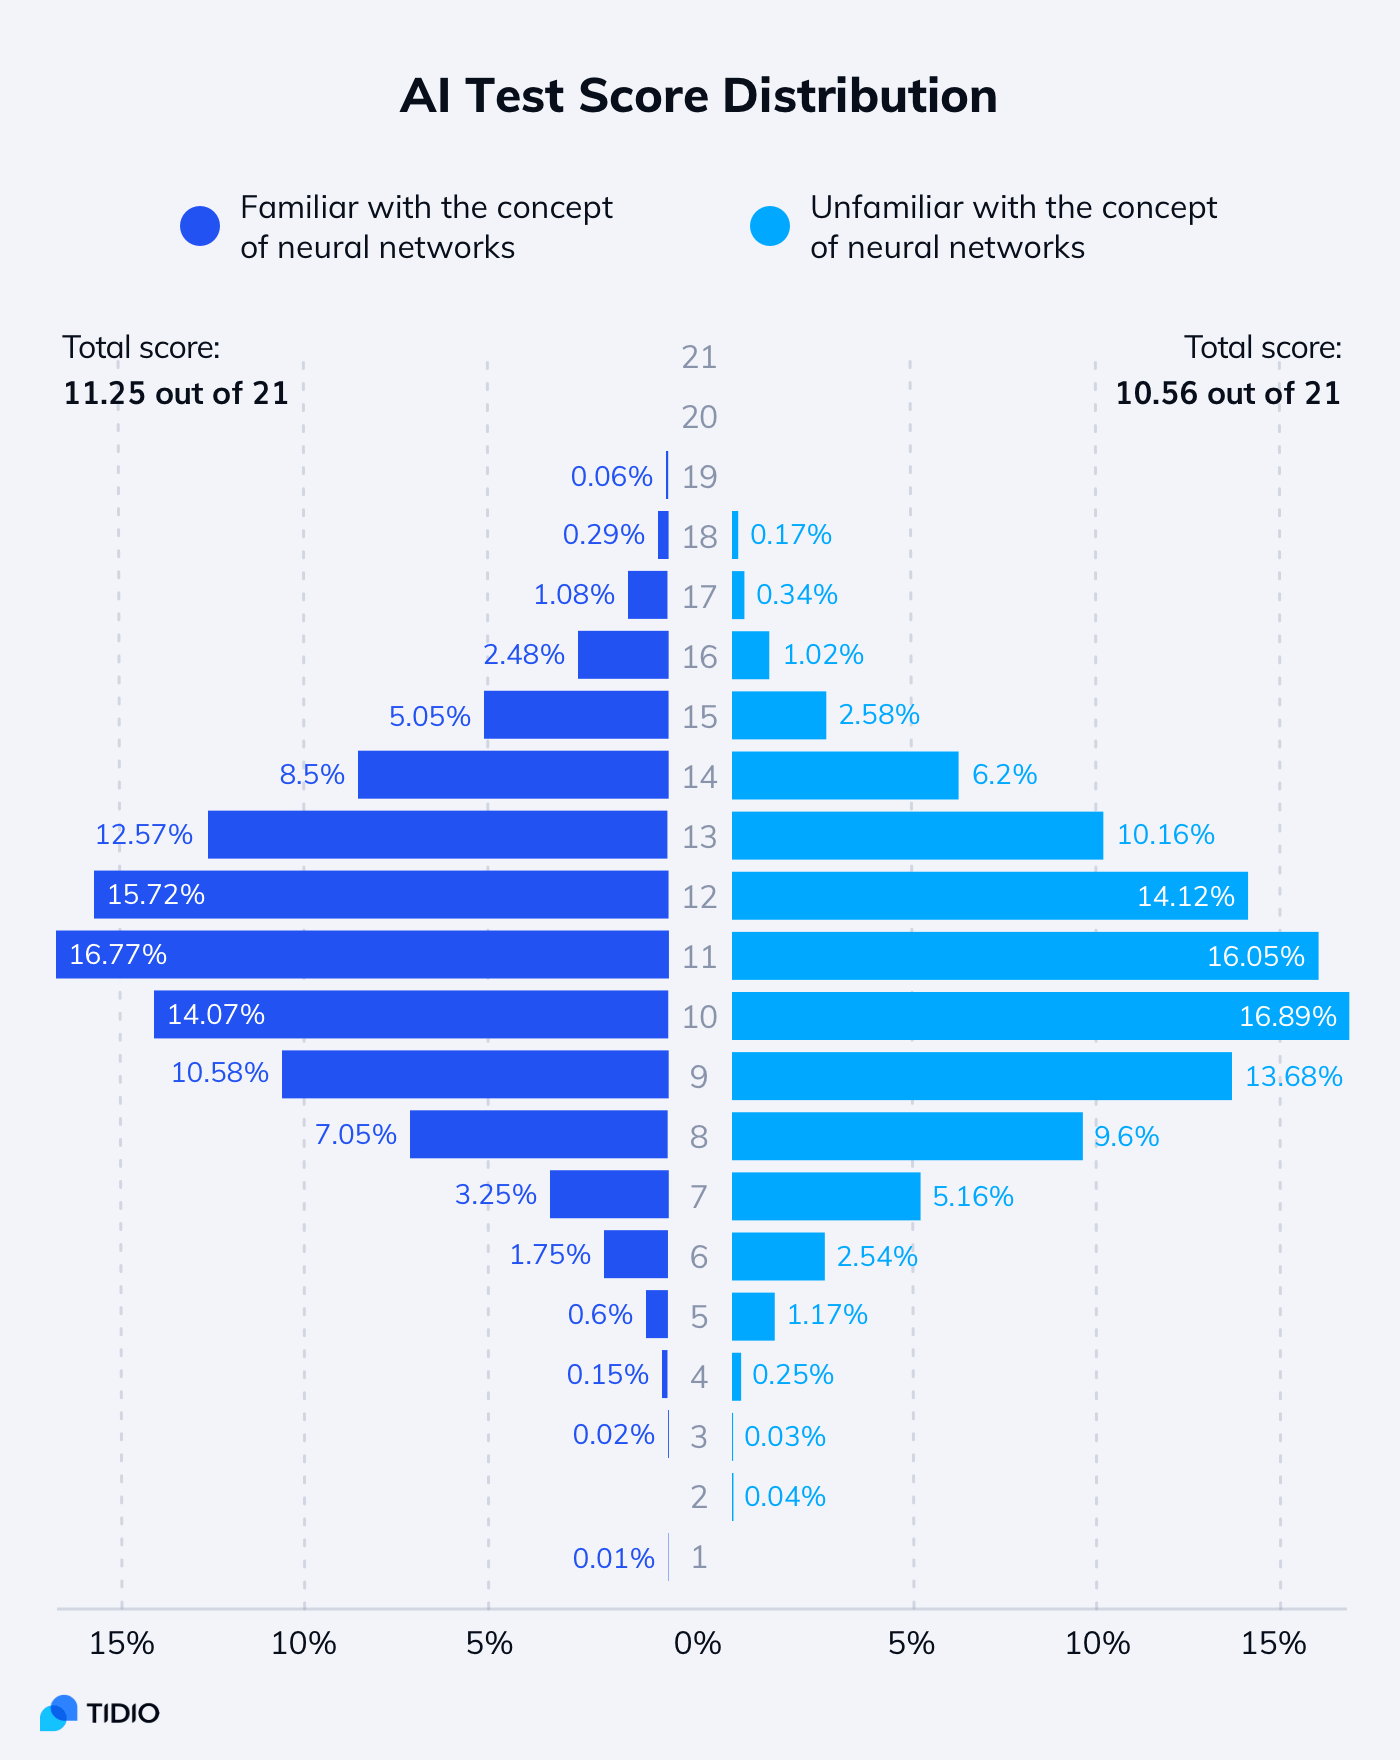 AI test results with score distribution among AI-enthusiast and the rest of the respondents